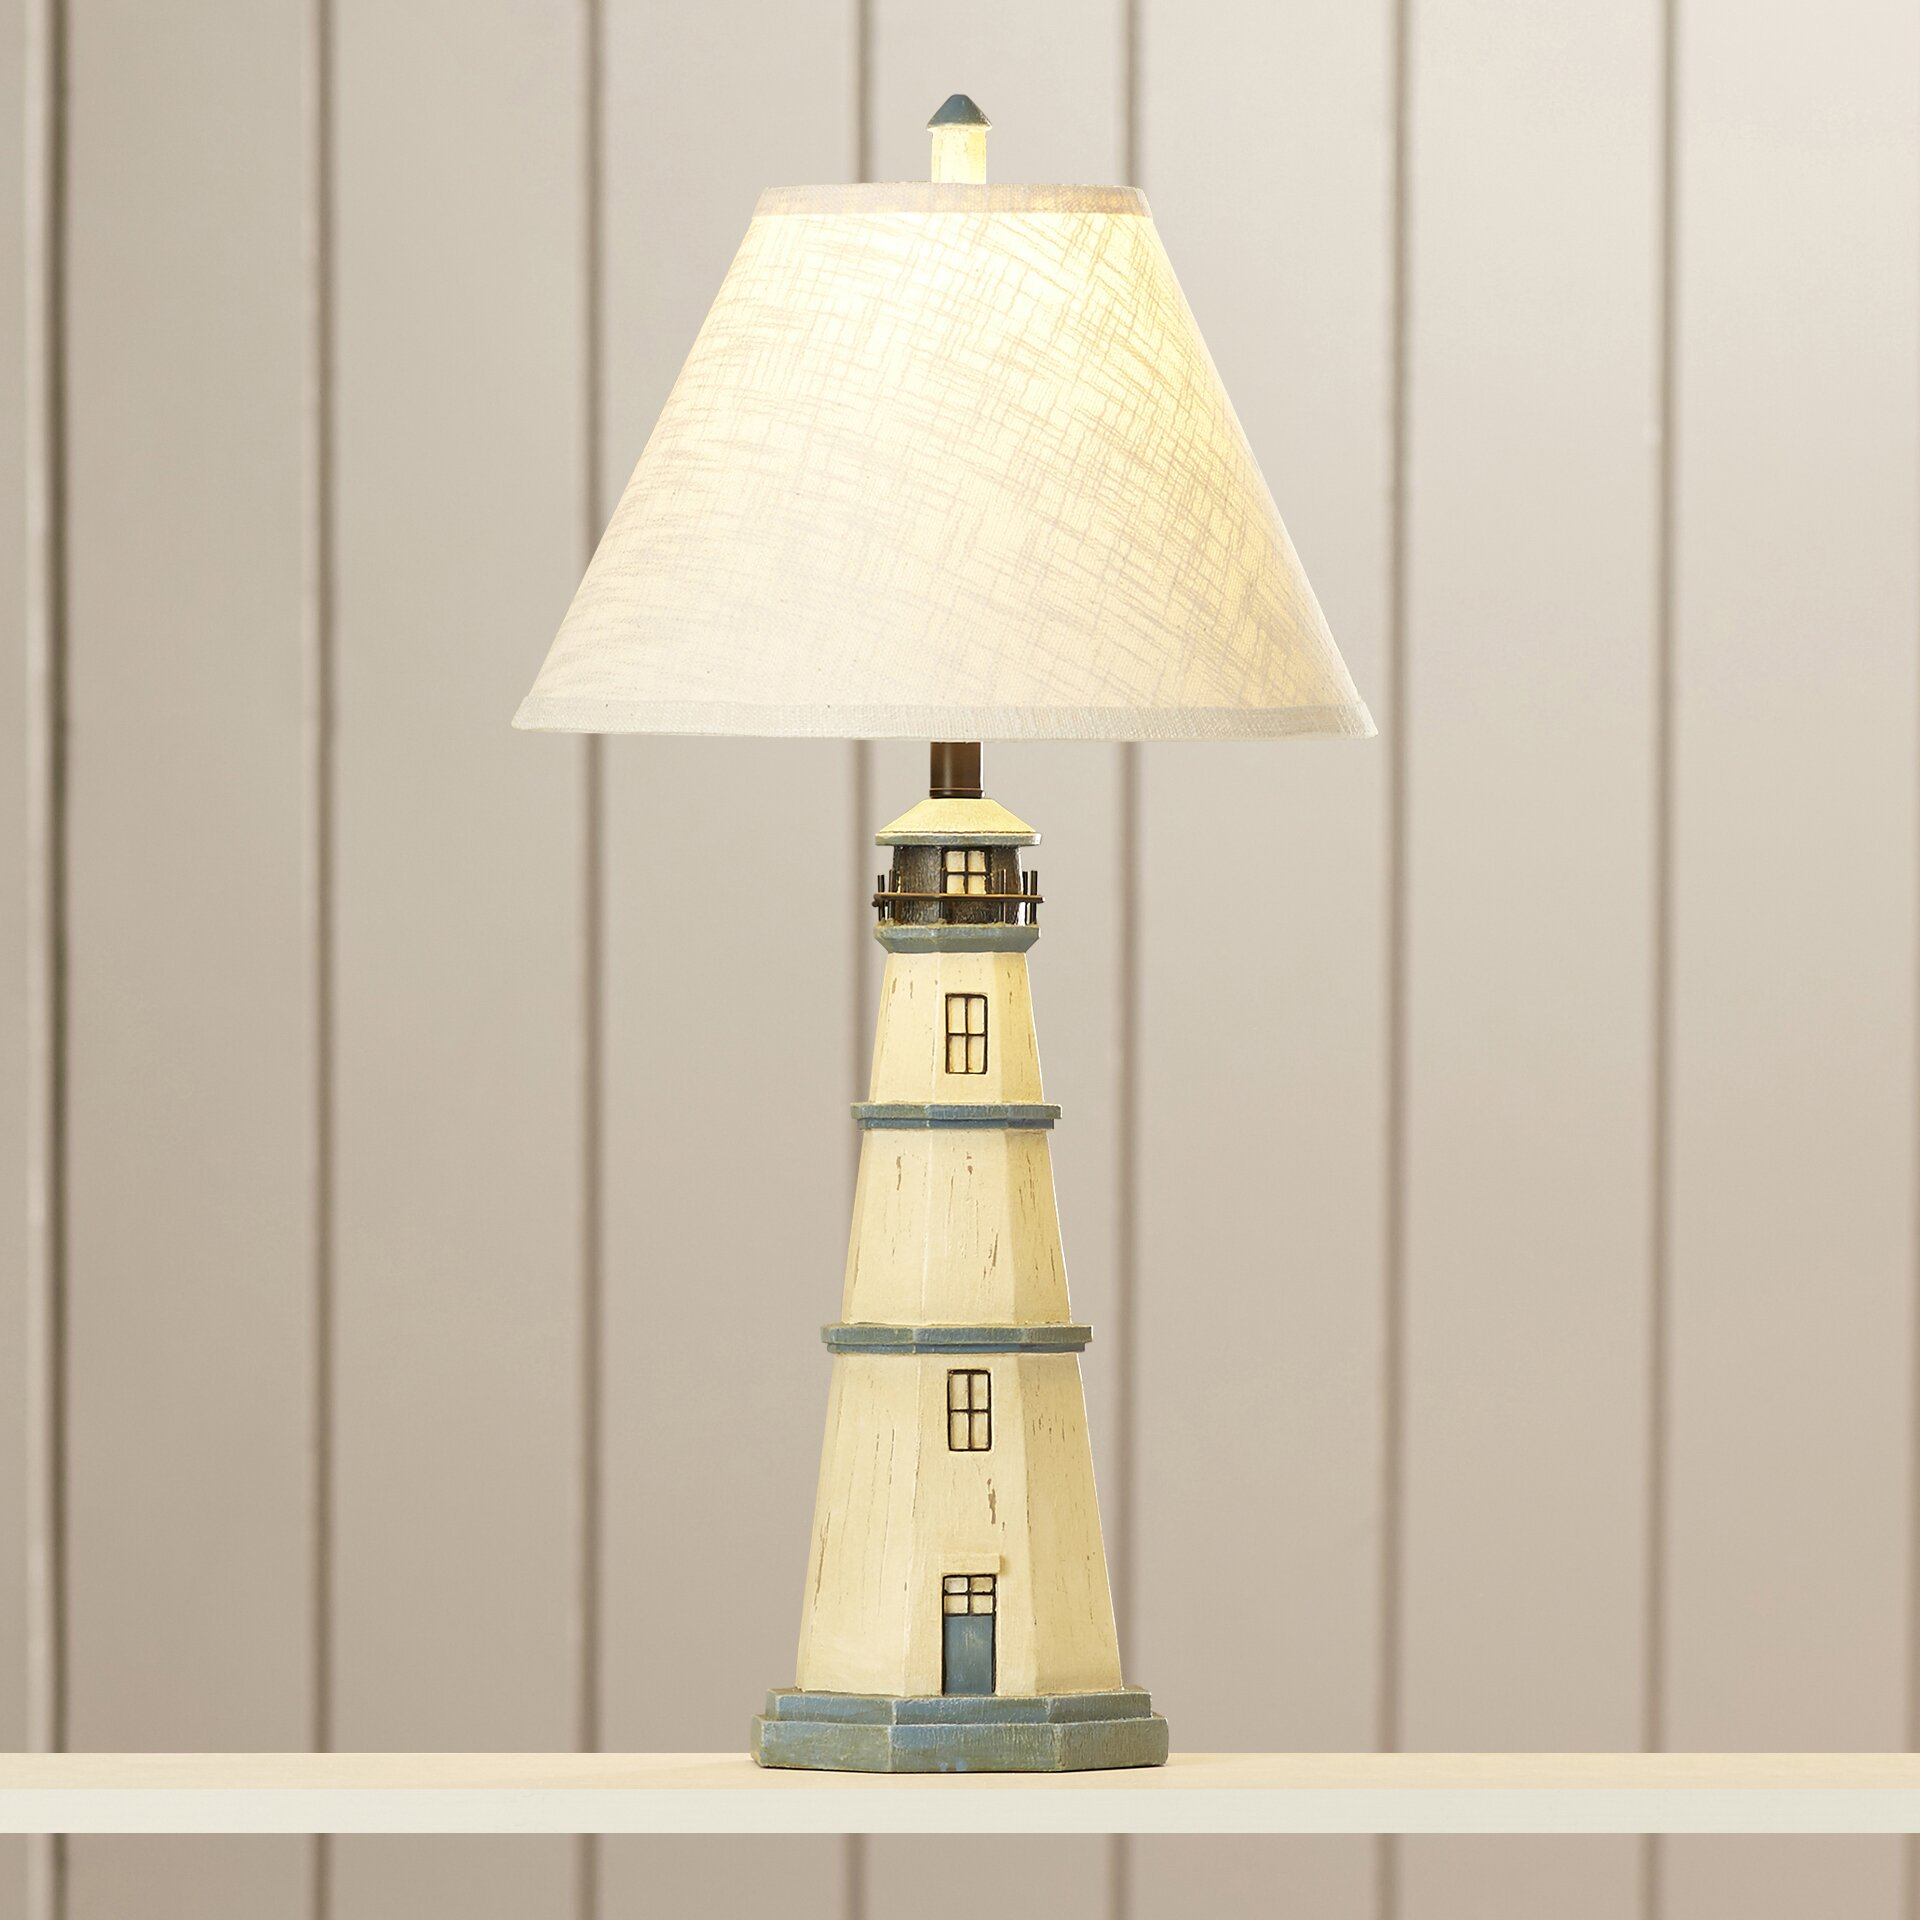 light house h table lamp with empire shade reviews wa. Black Bedroom Furniture Sets. Home Design Ideas